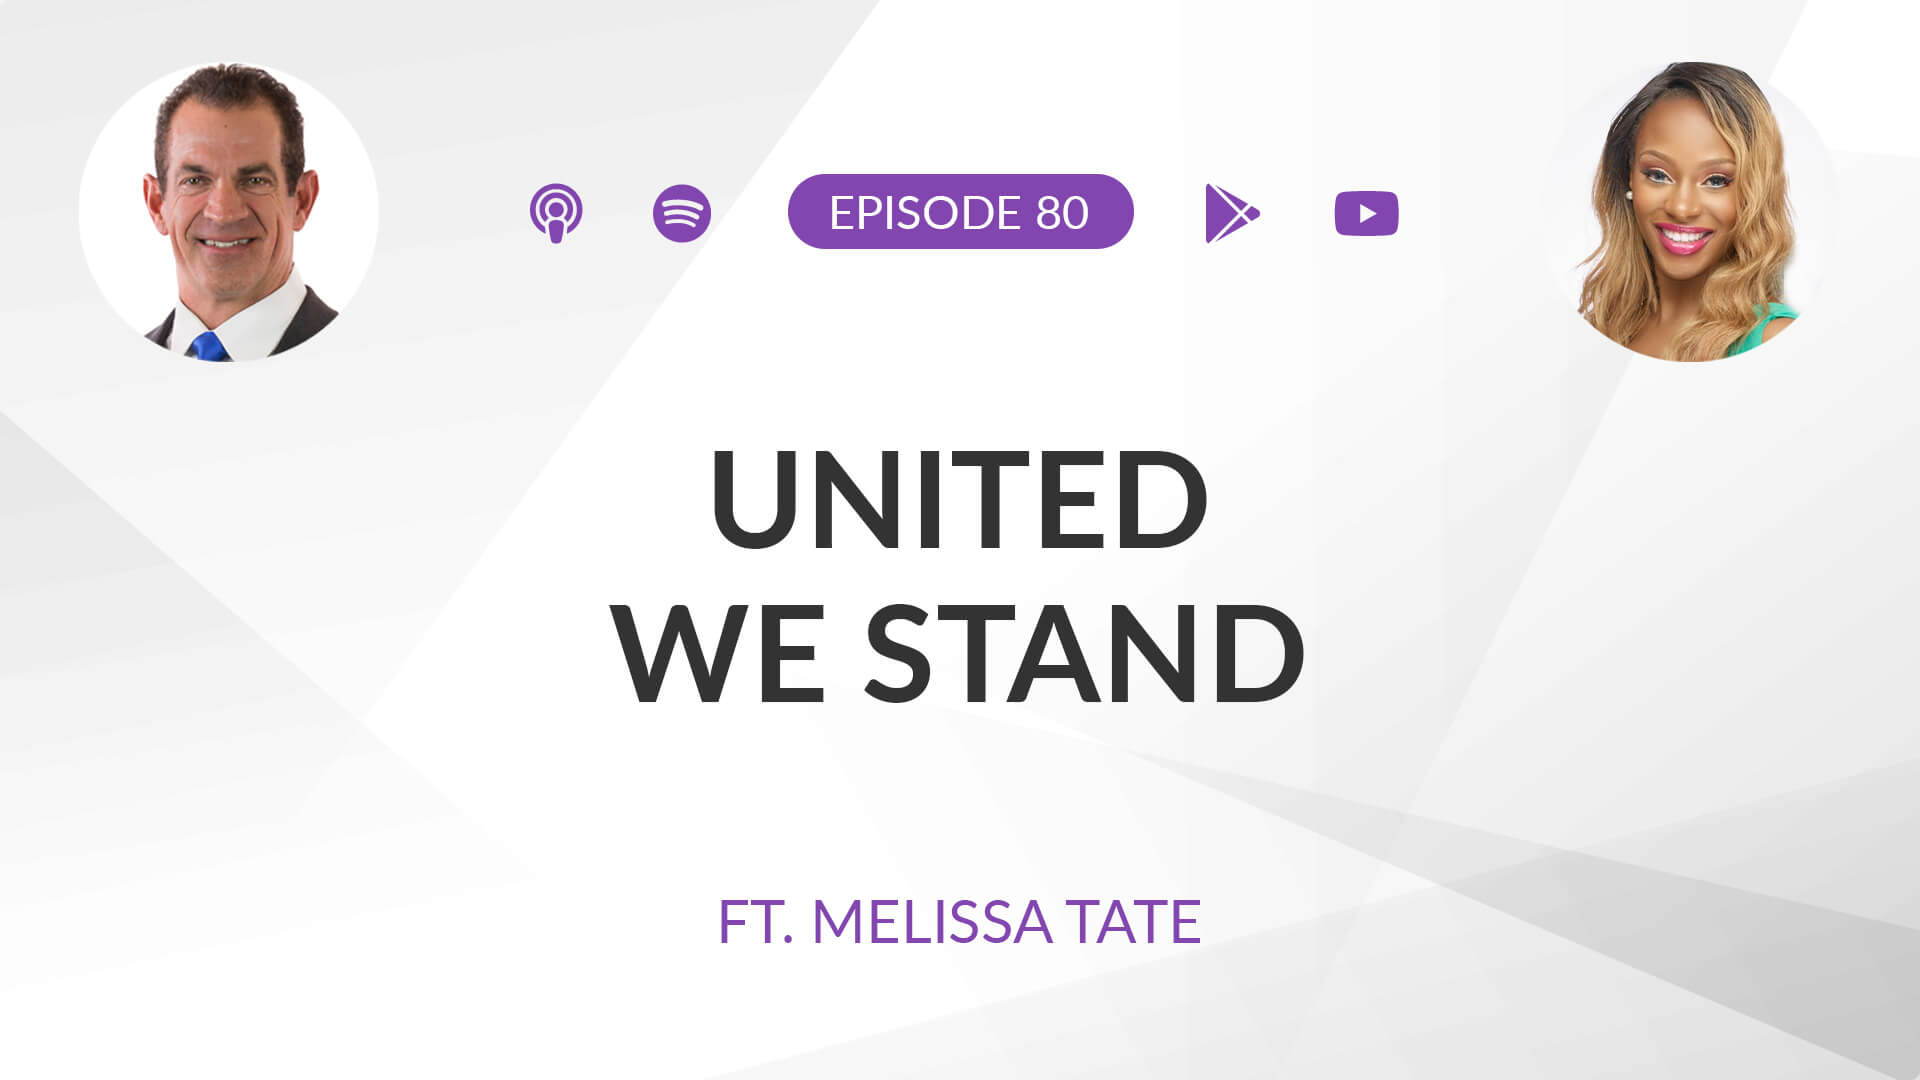 Ep 80: United We Stand ft. Melissa Tate